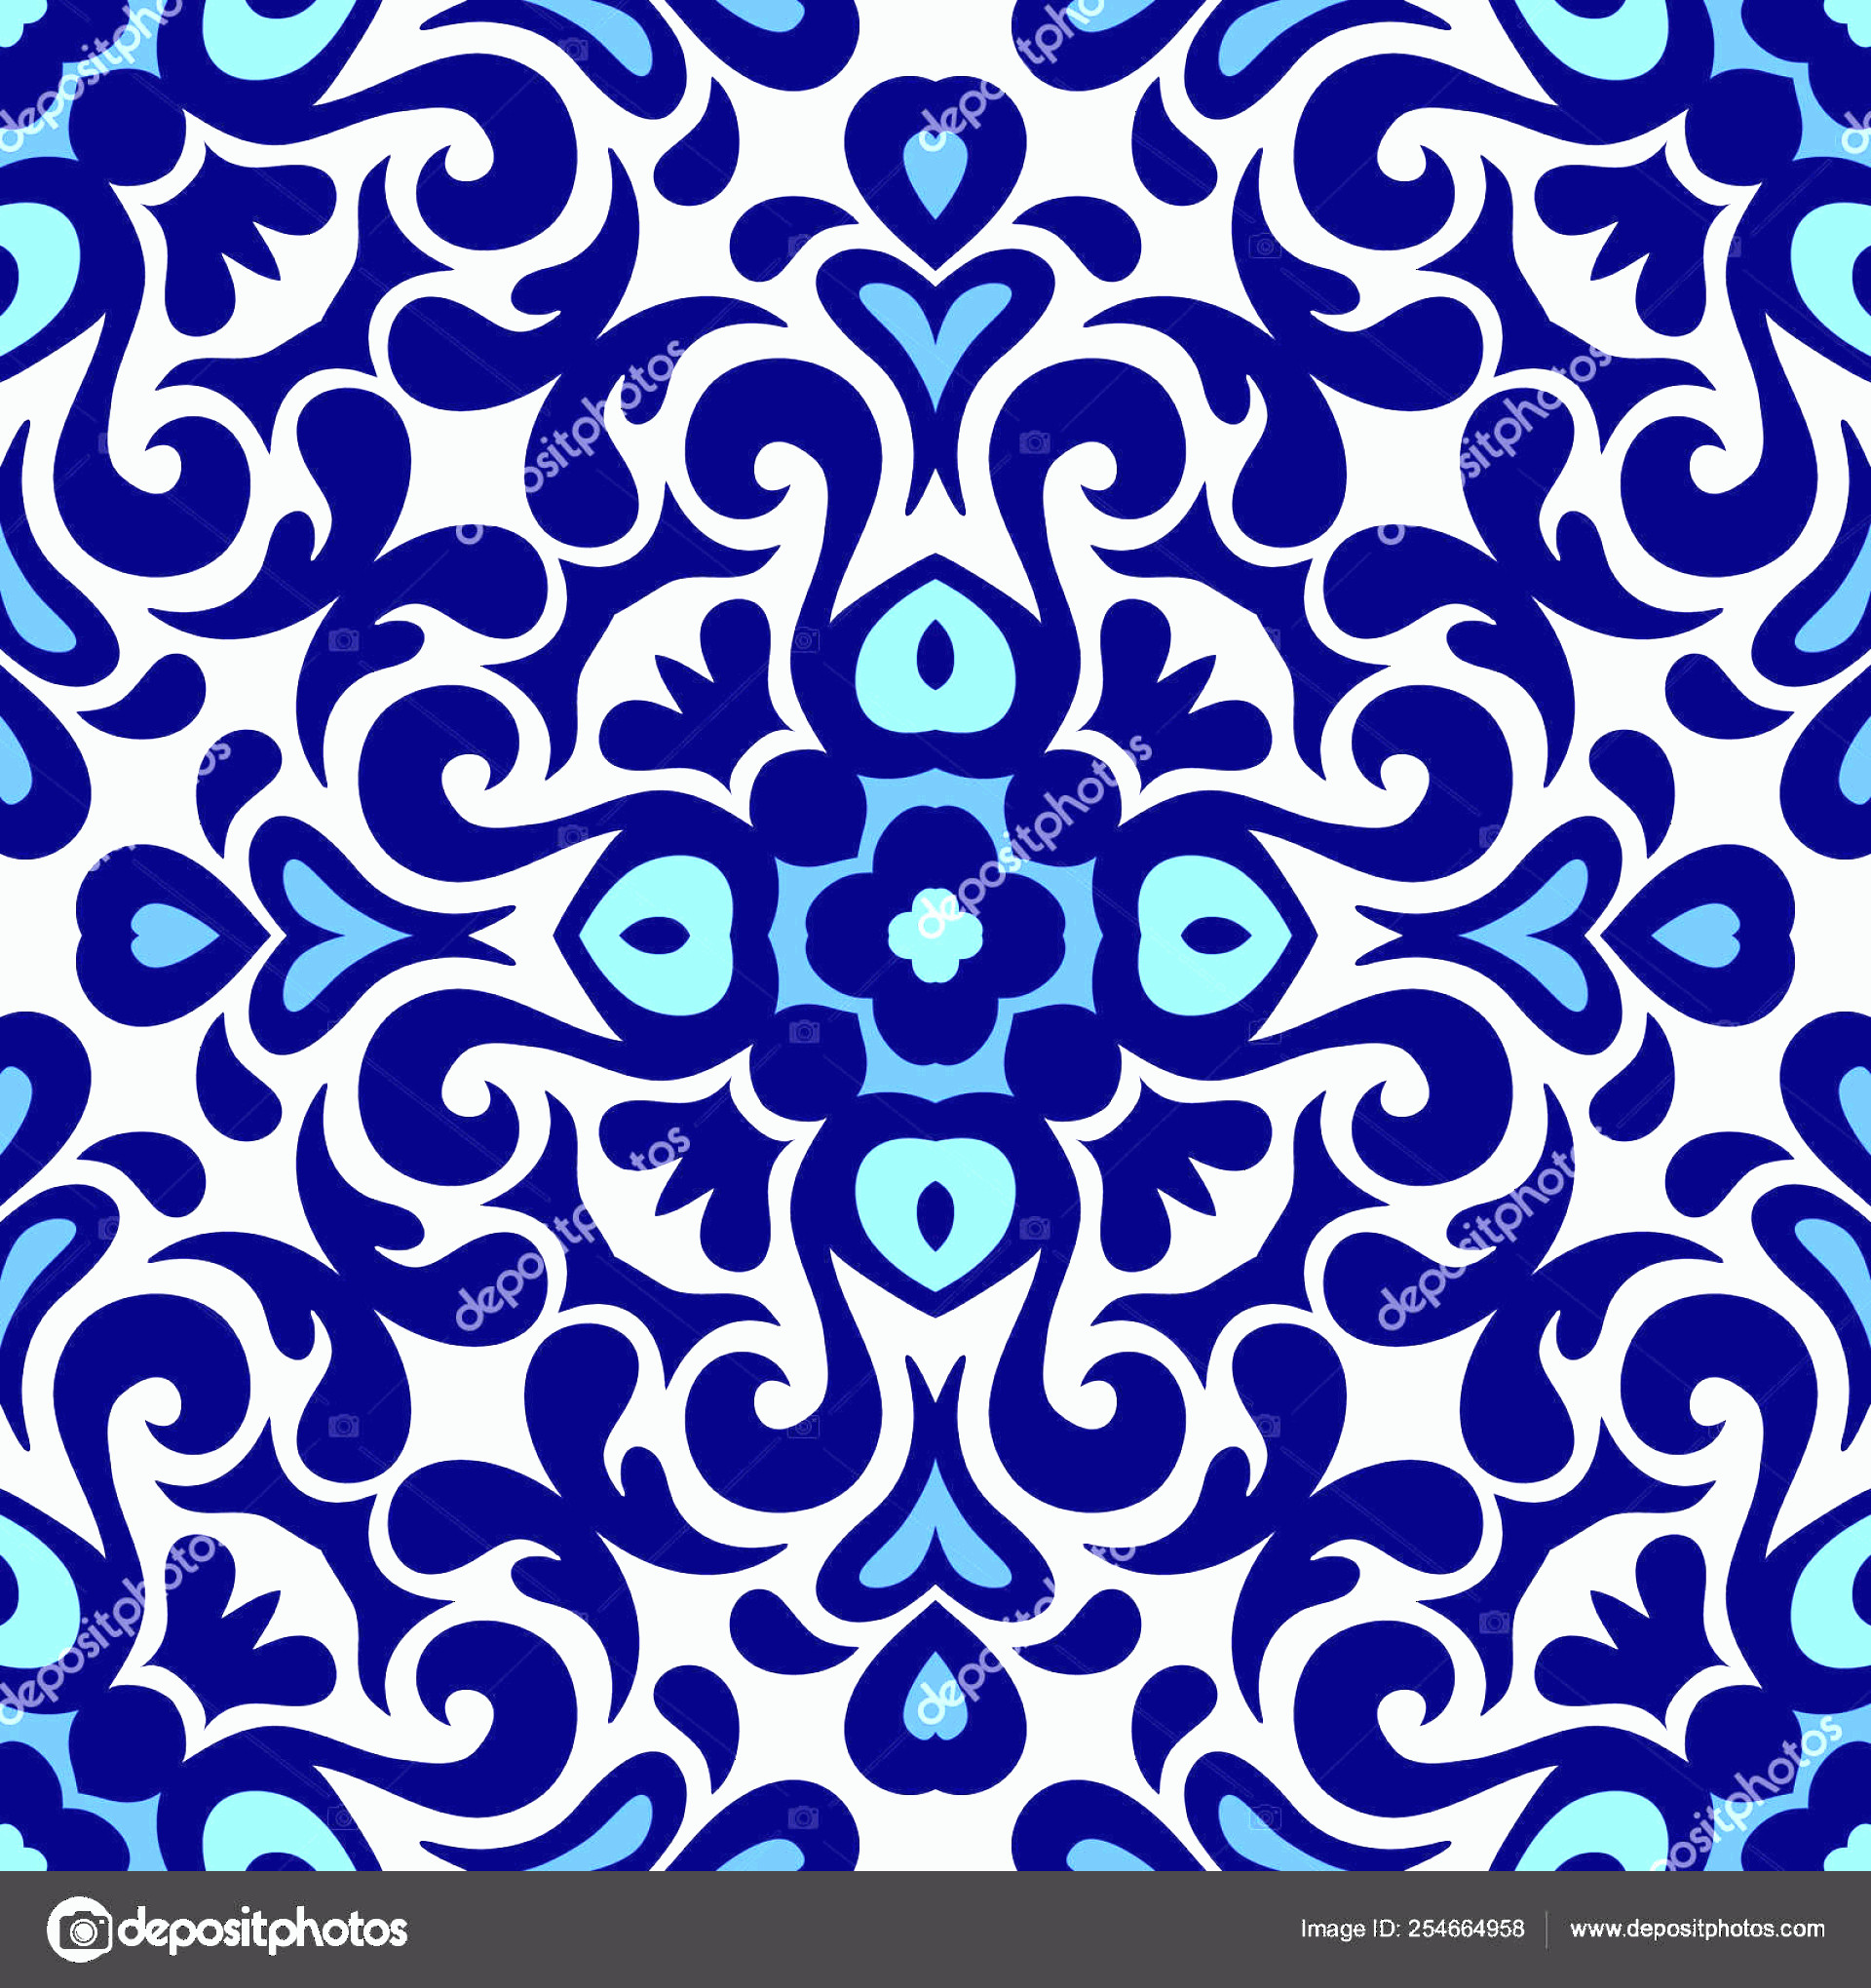 Blue And White Damask Vectors: Stock Illustration Floral Ornament Blue And White